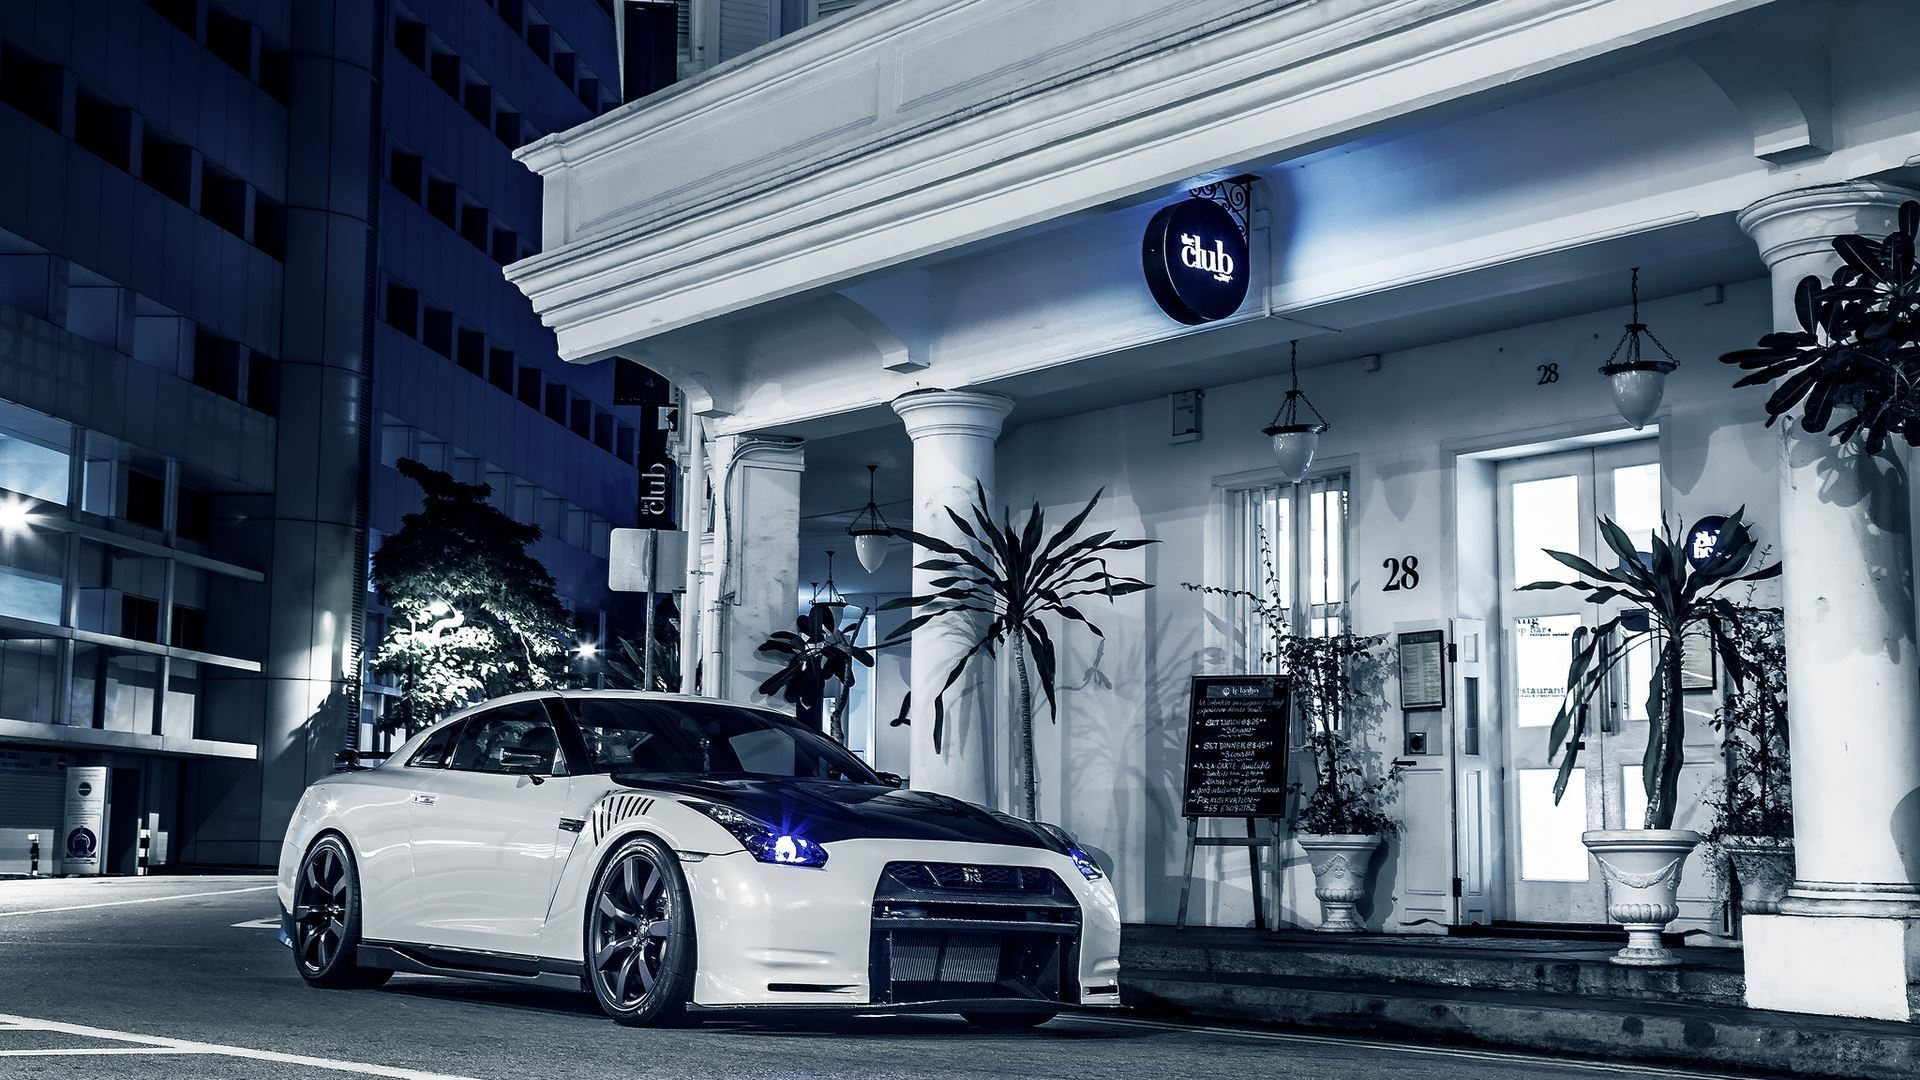 Hd Wallpapers For Laptop 15 6 Inch Screen Wallpaper Nissan Gtr Hd Gratuit 224 T 233 L 233 Charger Sur Ngn Mag